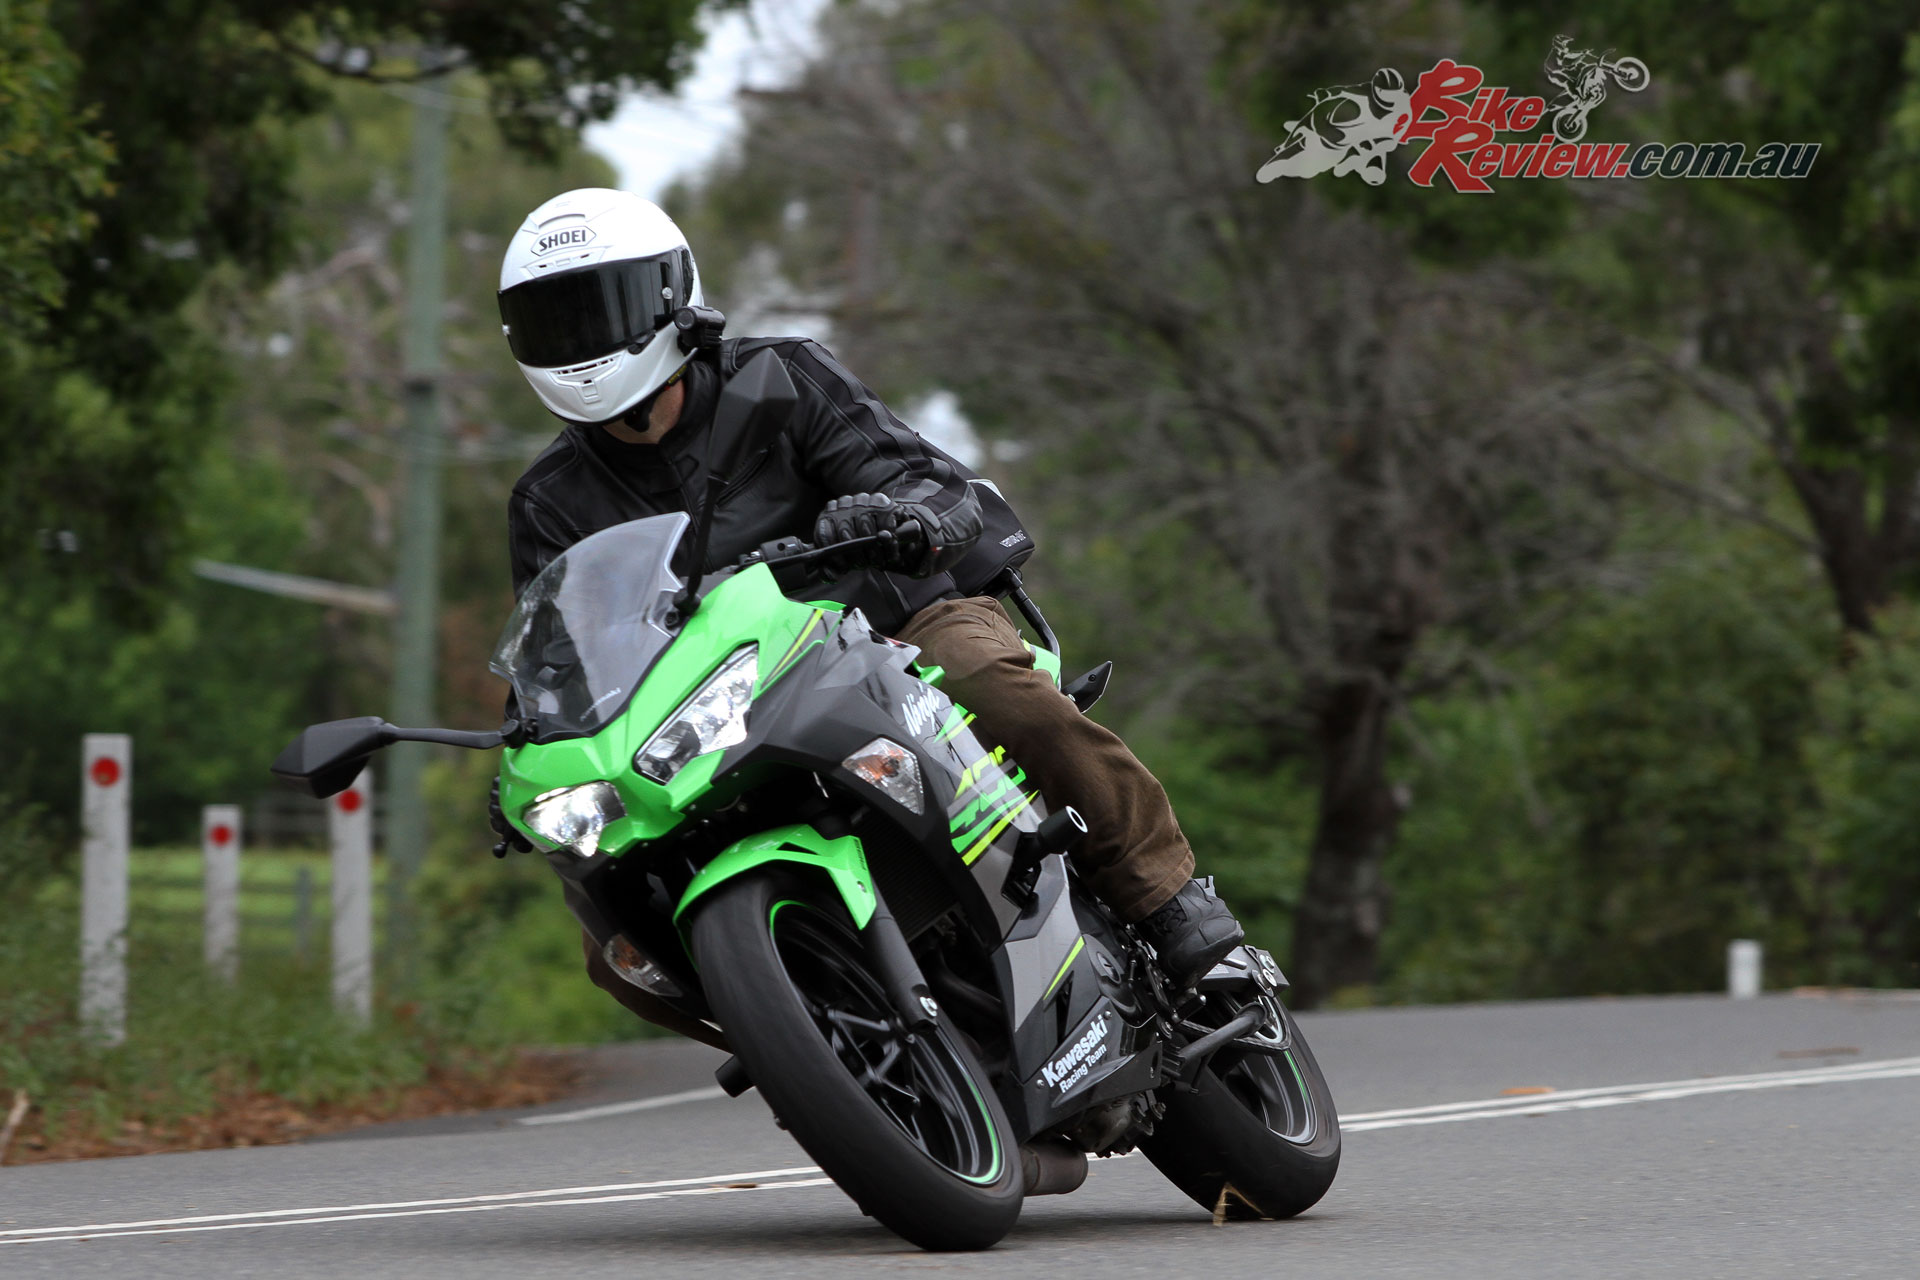 Jeff also recently spent a few weeks on the Project Ninja 400, check out his video review post!